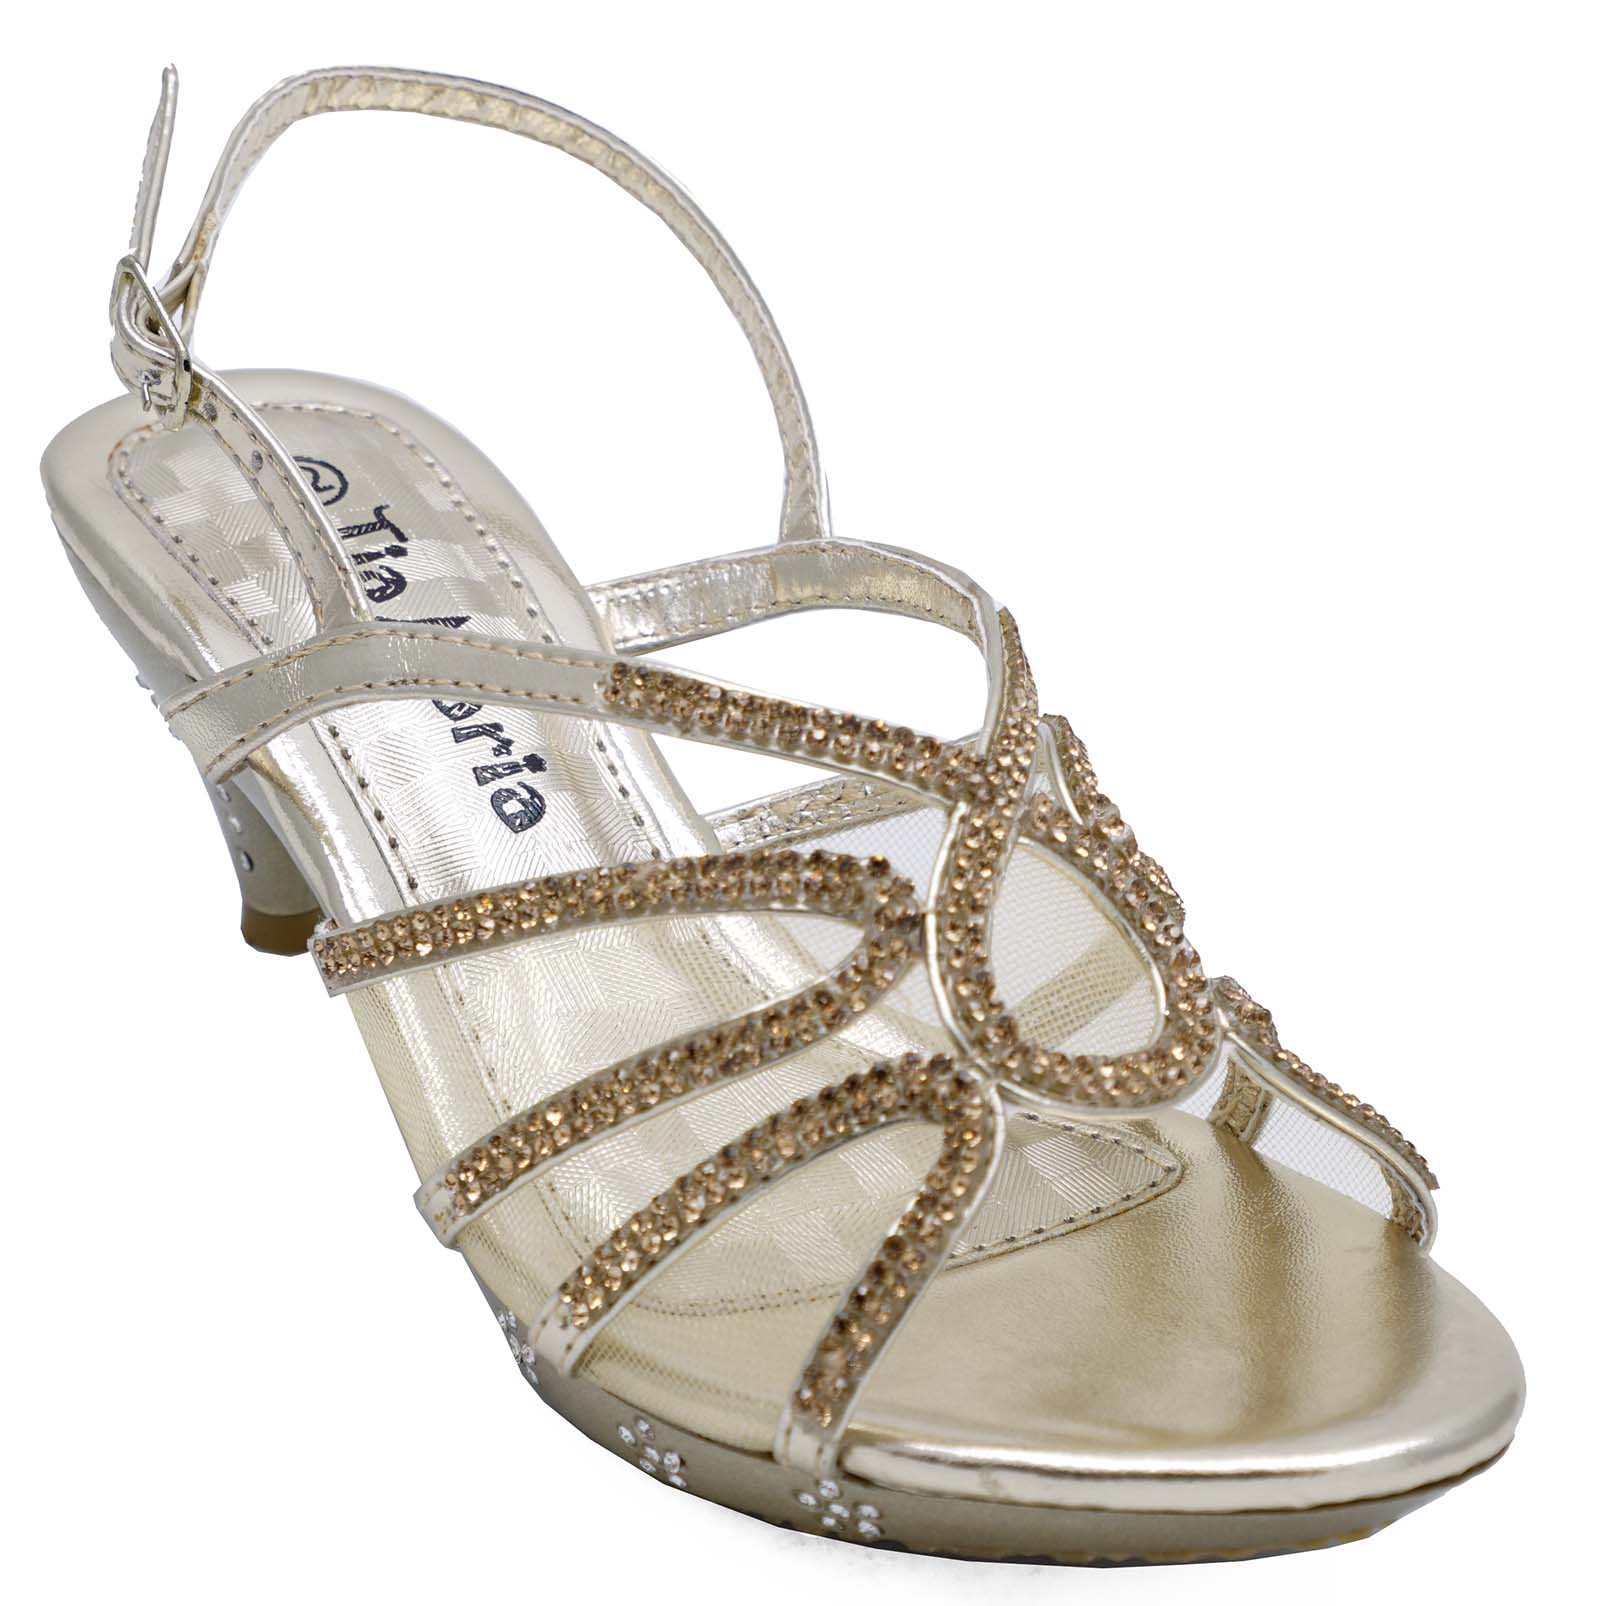 ac008f1d7 Sentinel GIRLS CHILDRENS GOLD DRESS-UP DIAMANTE LOW-HEEL SANDALS PARTY  SHOES SIZES 10-